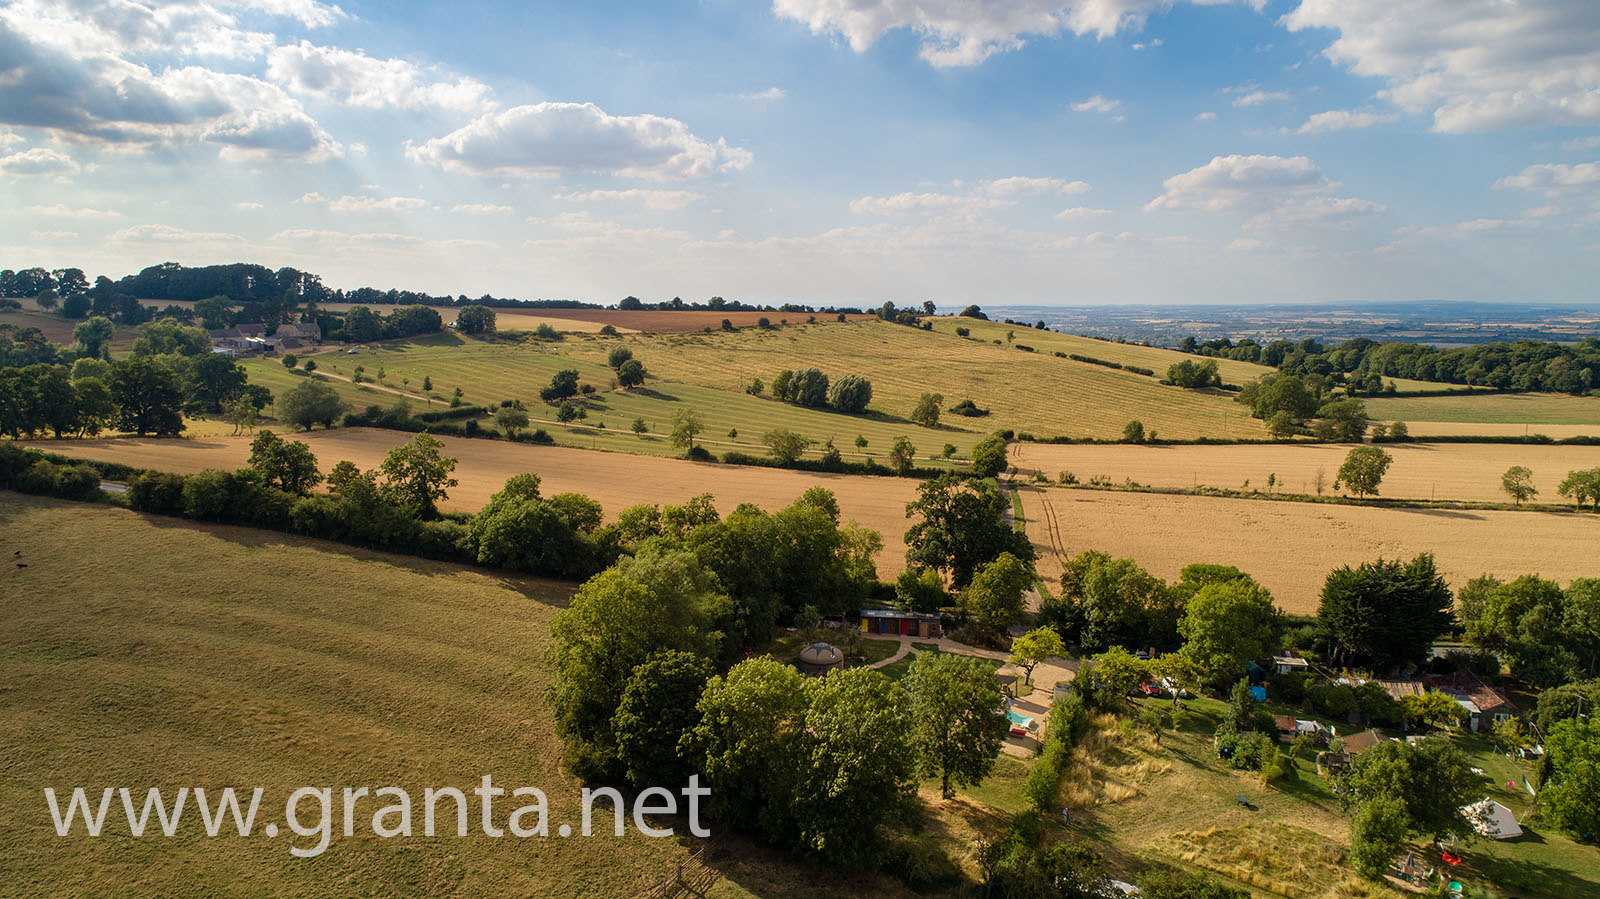 Drone photo of Campden Yurts campsite and the surrounding countryside